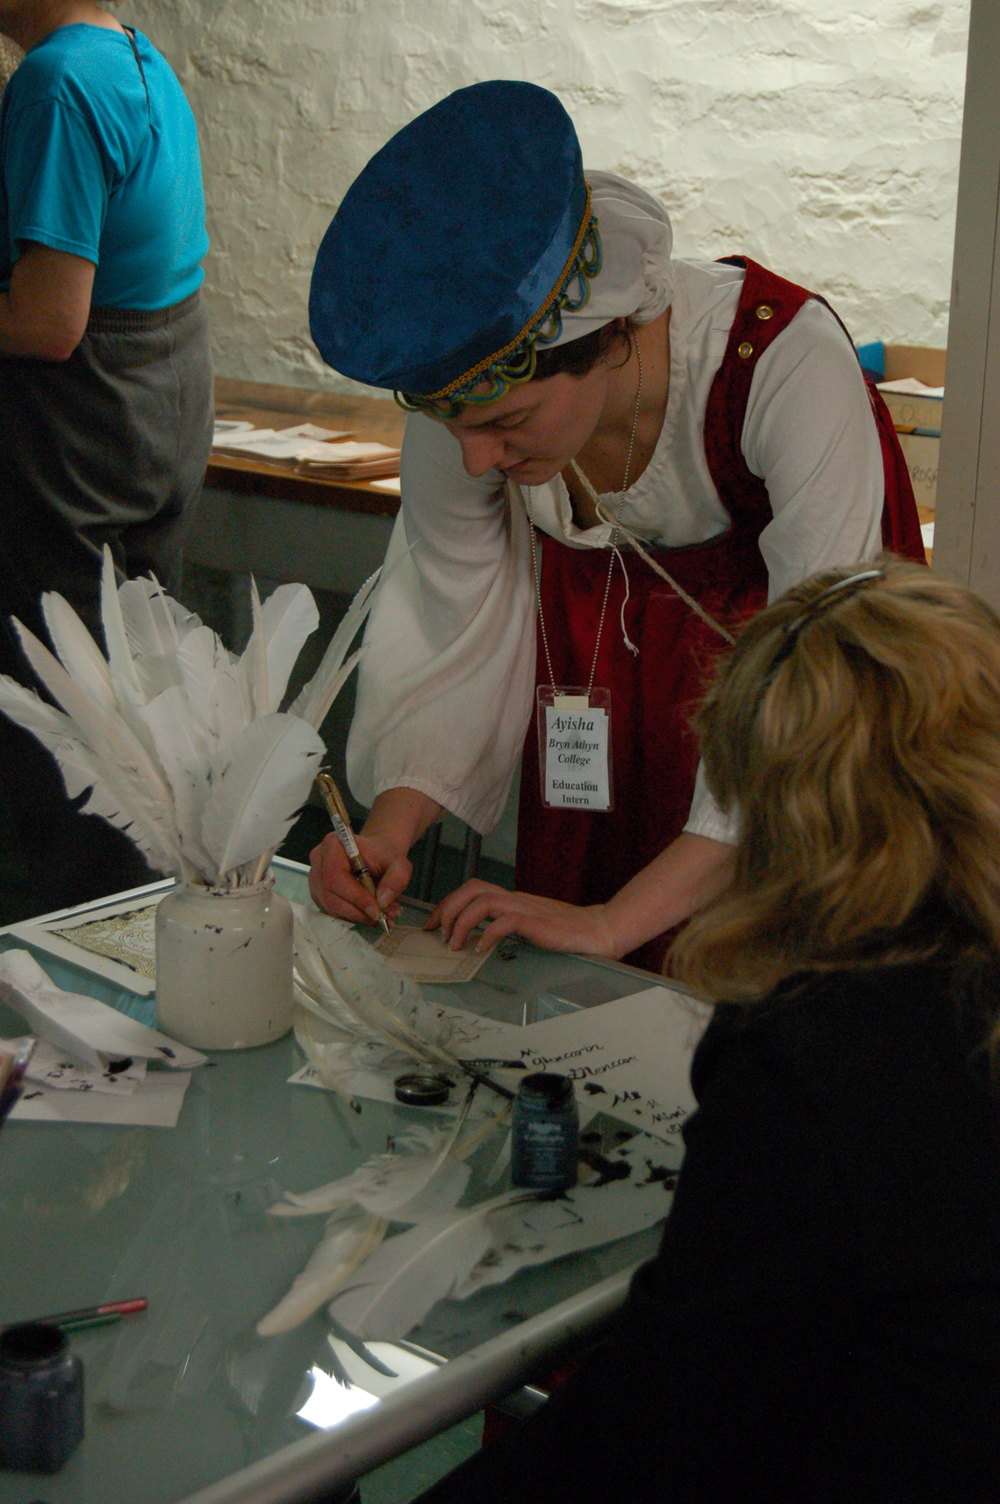 A volunteer helps a visitor try her hand at writing with a quill pen.